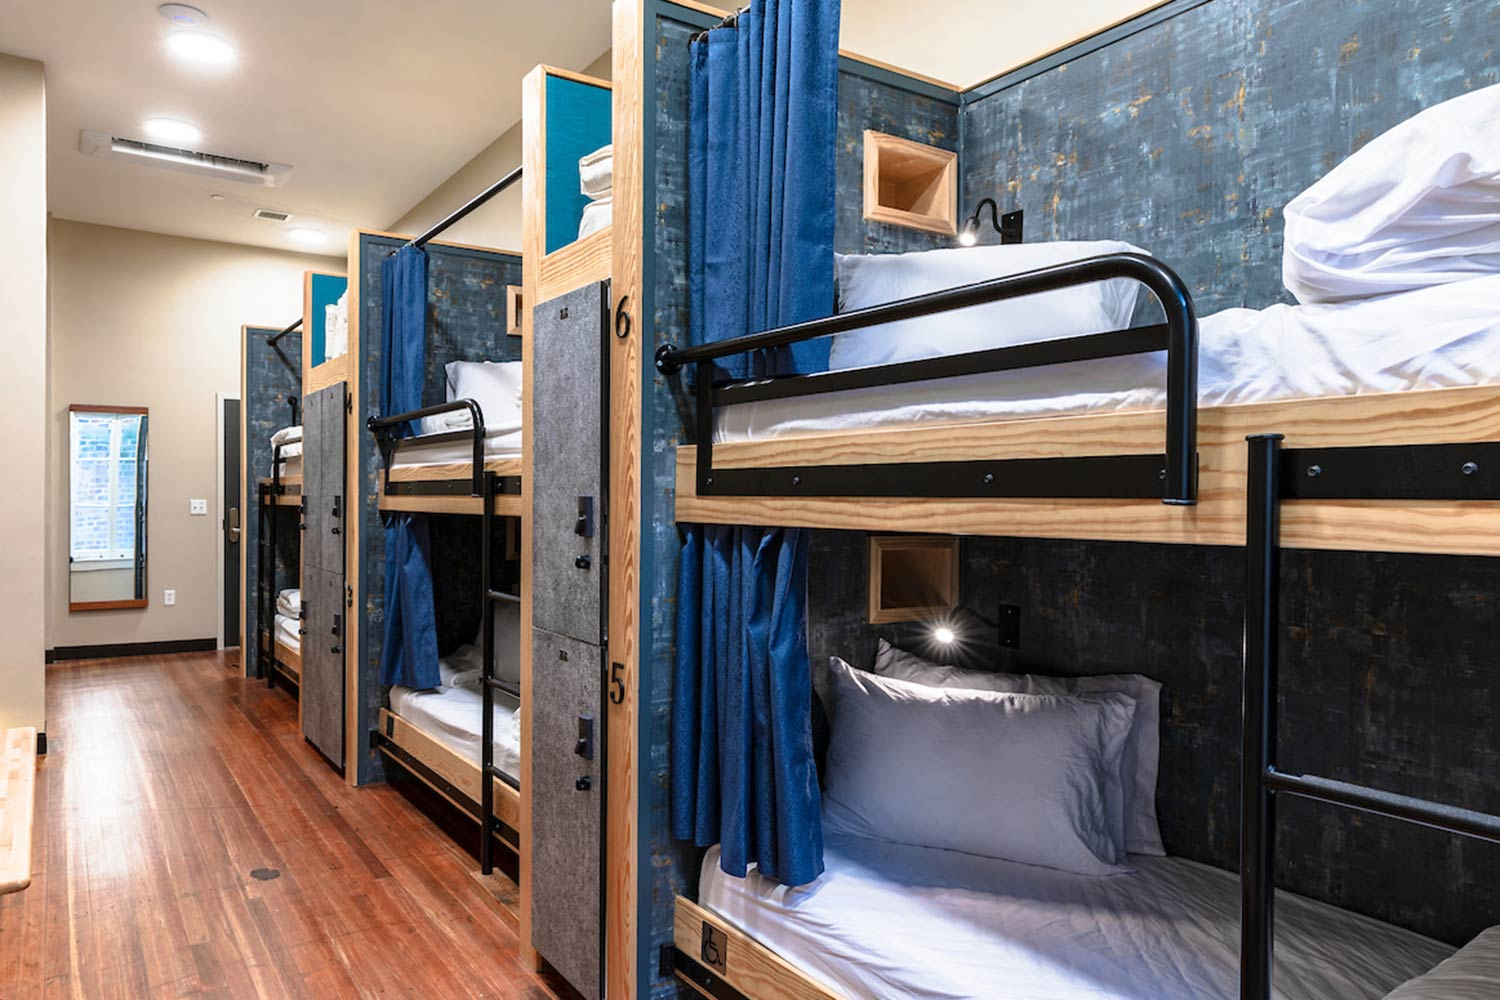 Room with 6 bunk beds